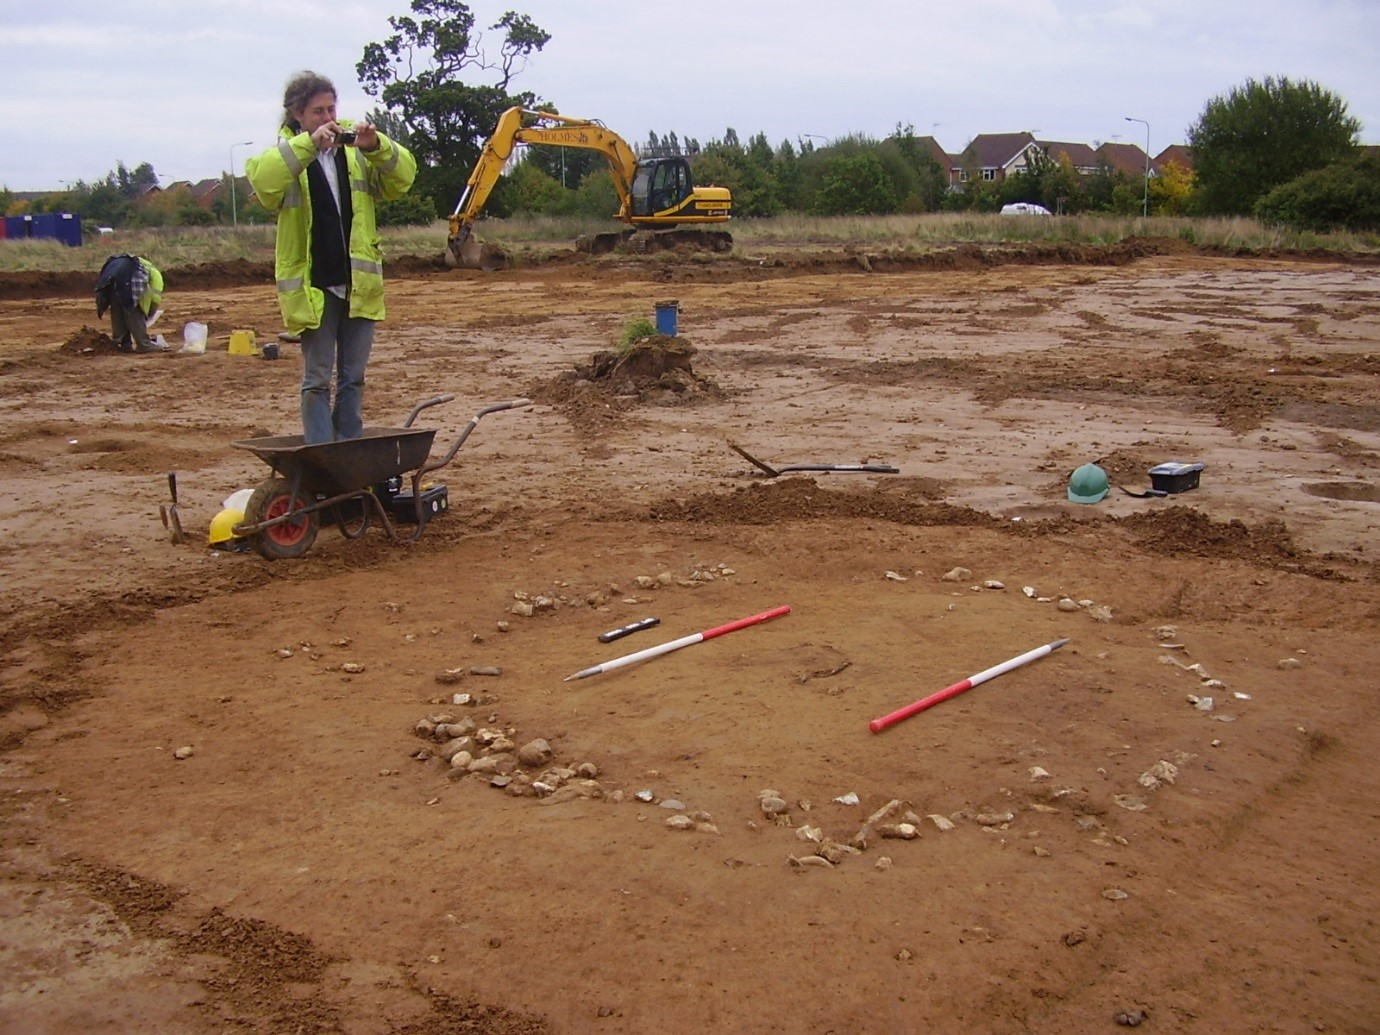 Mark recording a Bronze Age cremation urn and burial monument at Sproughton, Ipswich